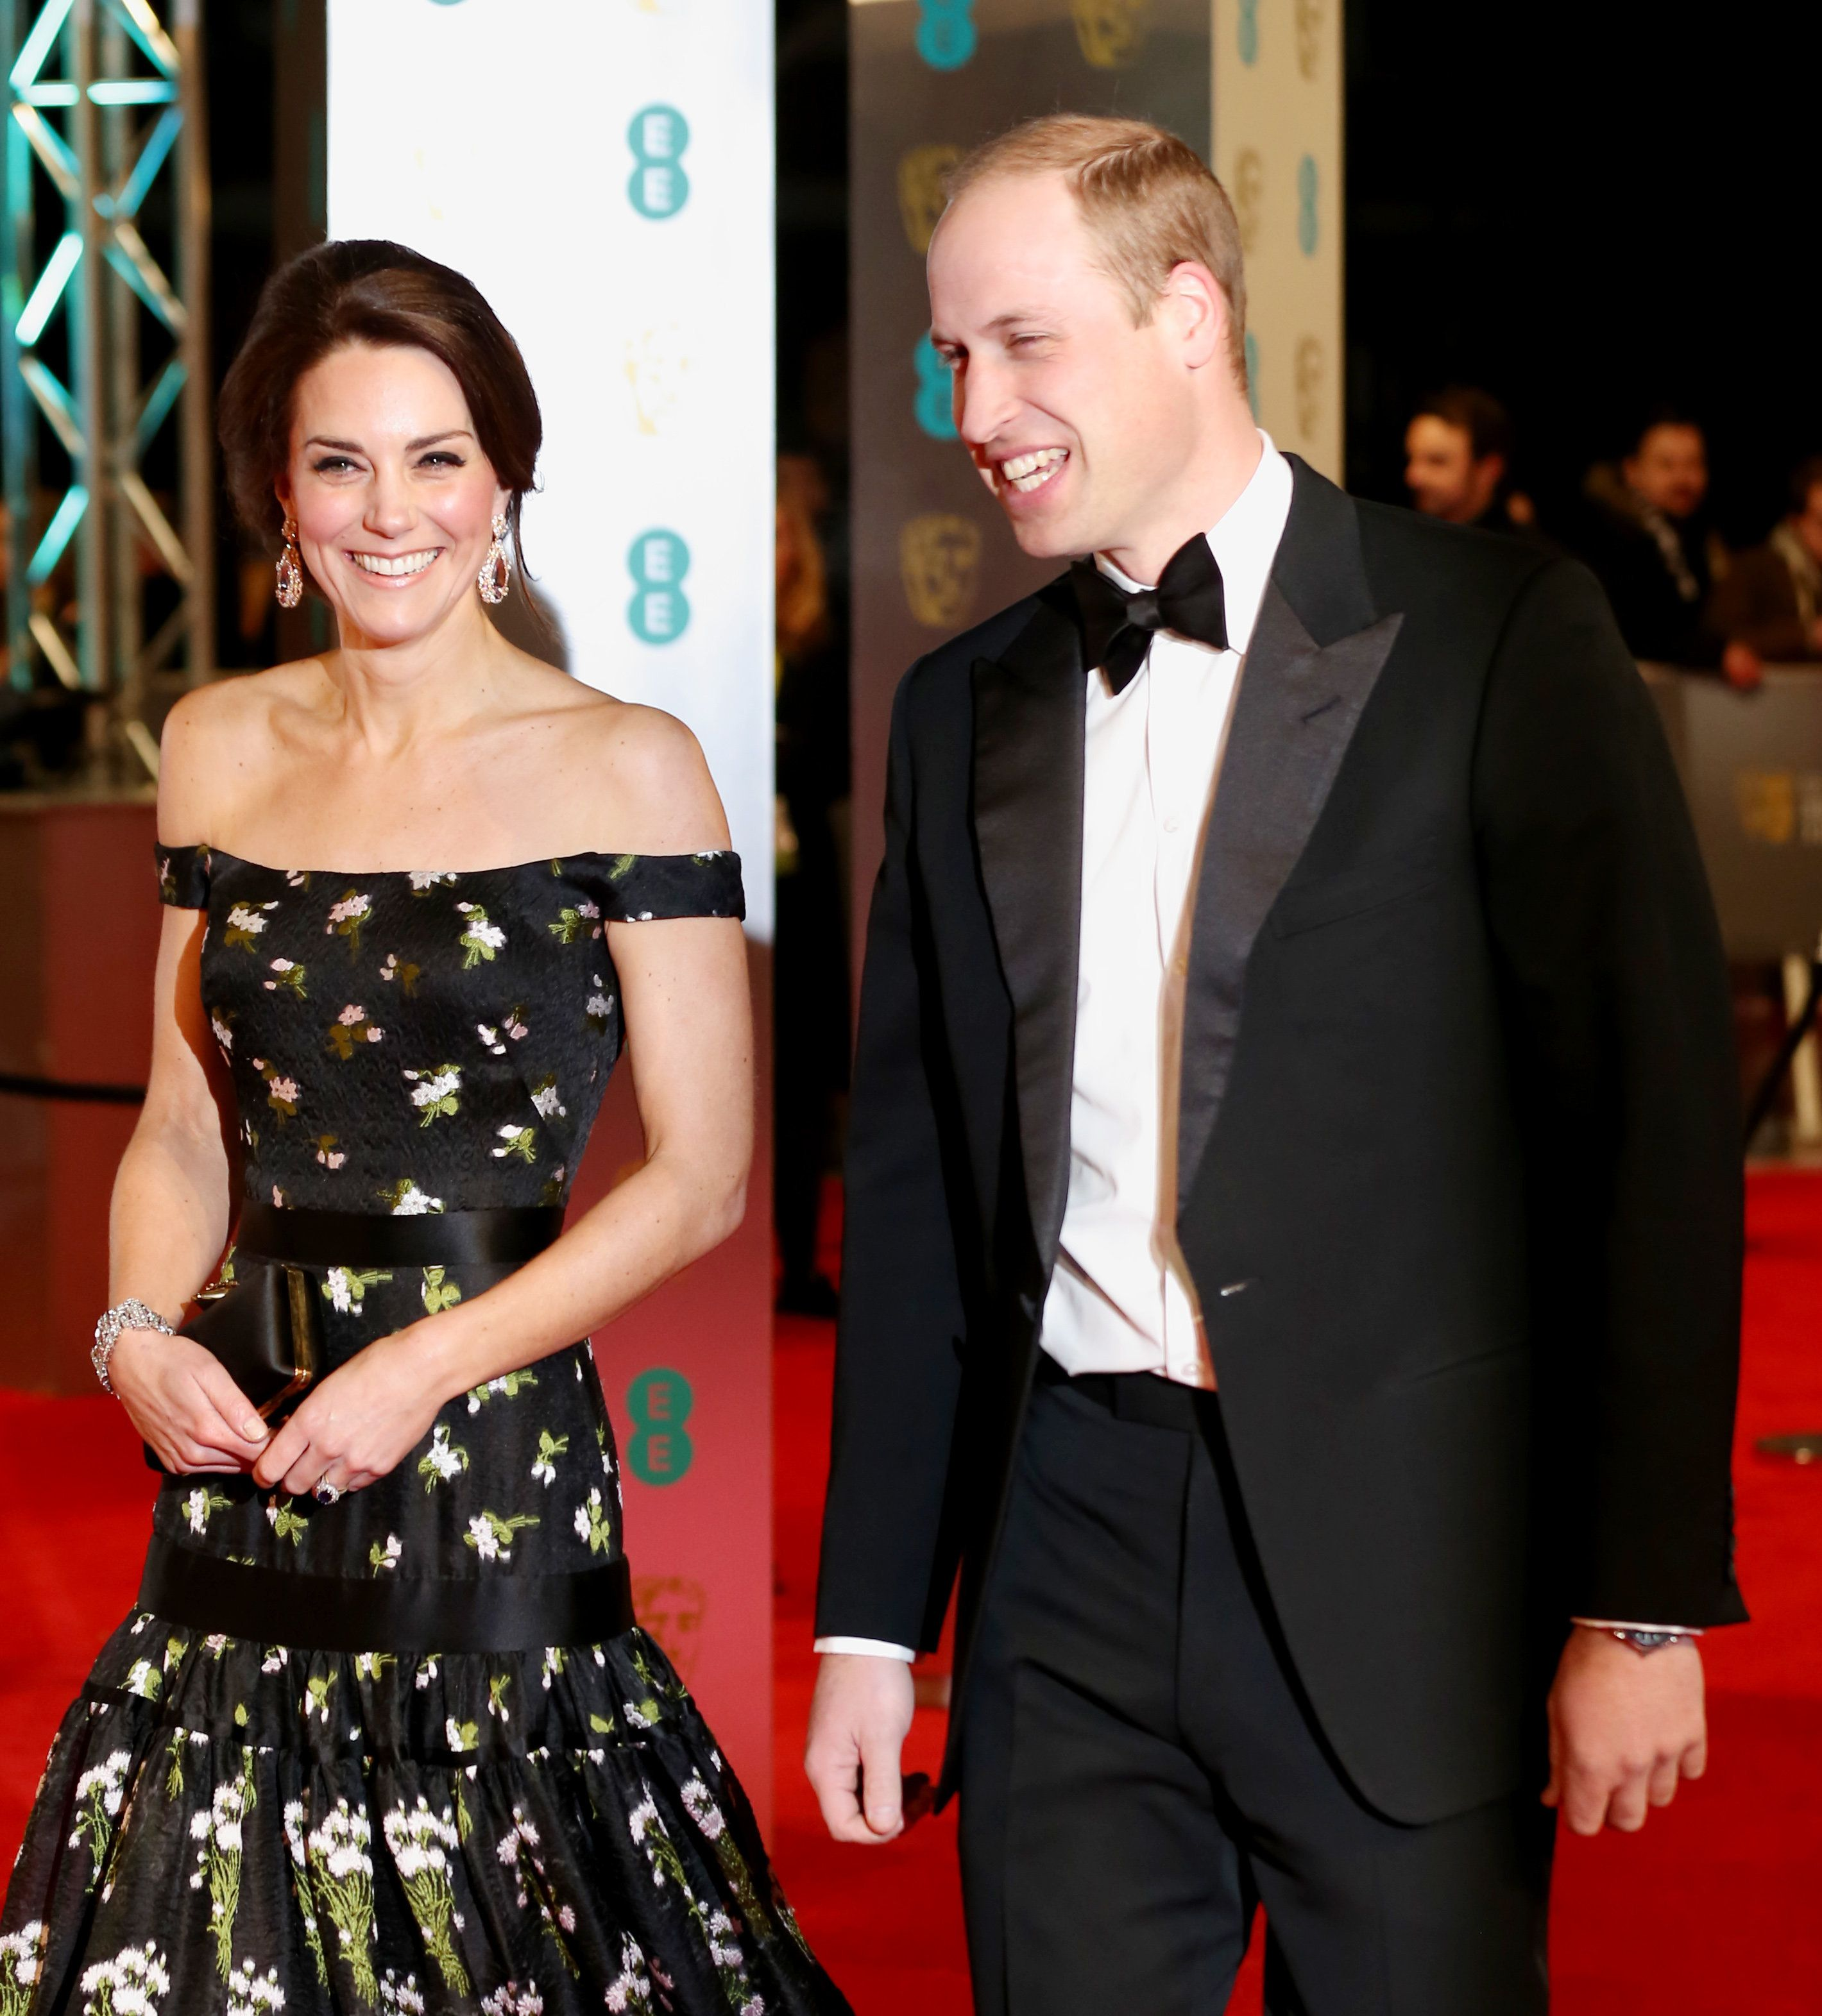 BAFTAs 2017: The Duke And Duchess Of Cambridge Led The Best Dressed Couples On The Red